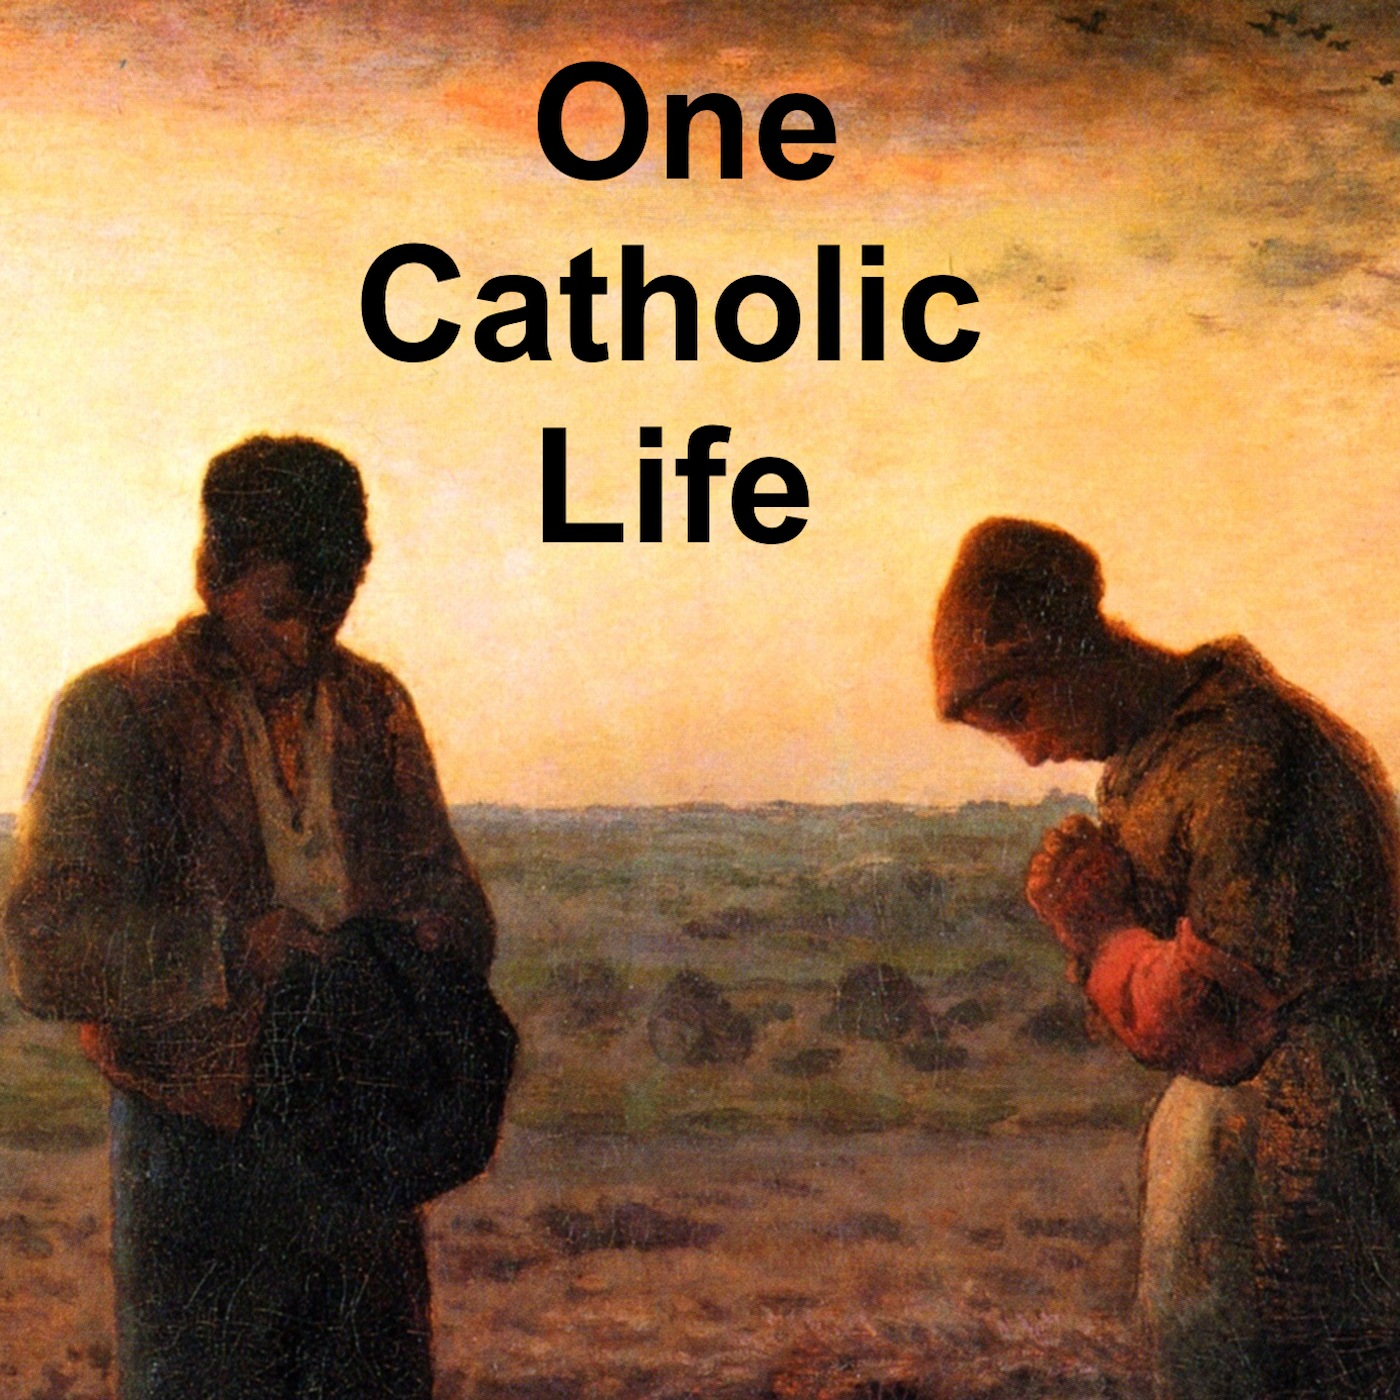 One Catholic Life